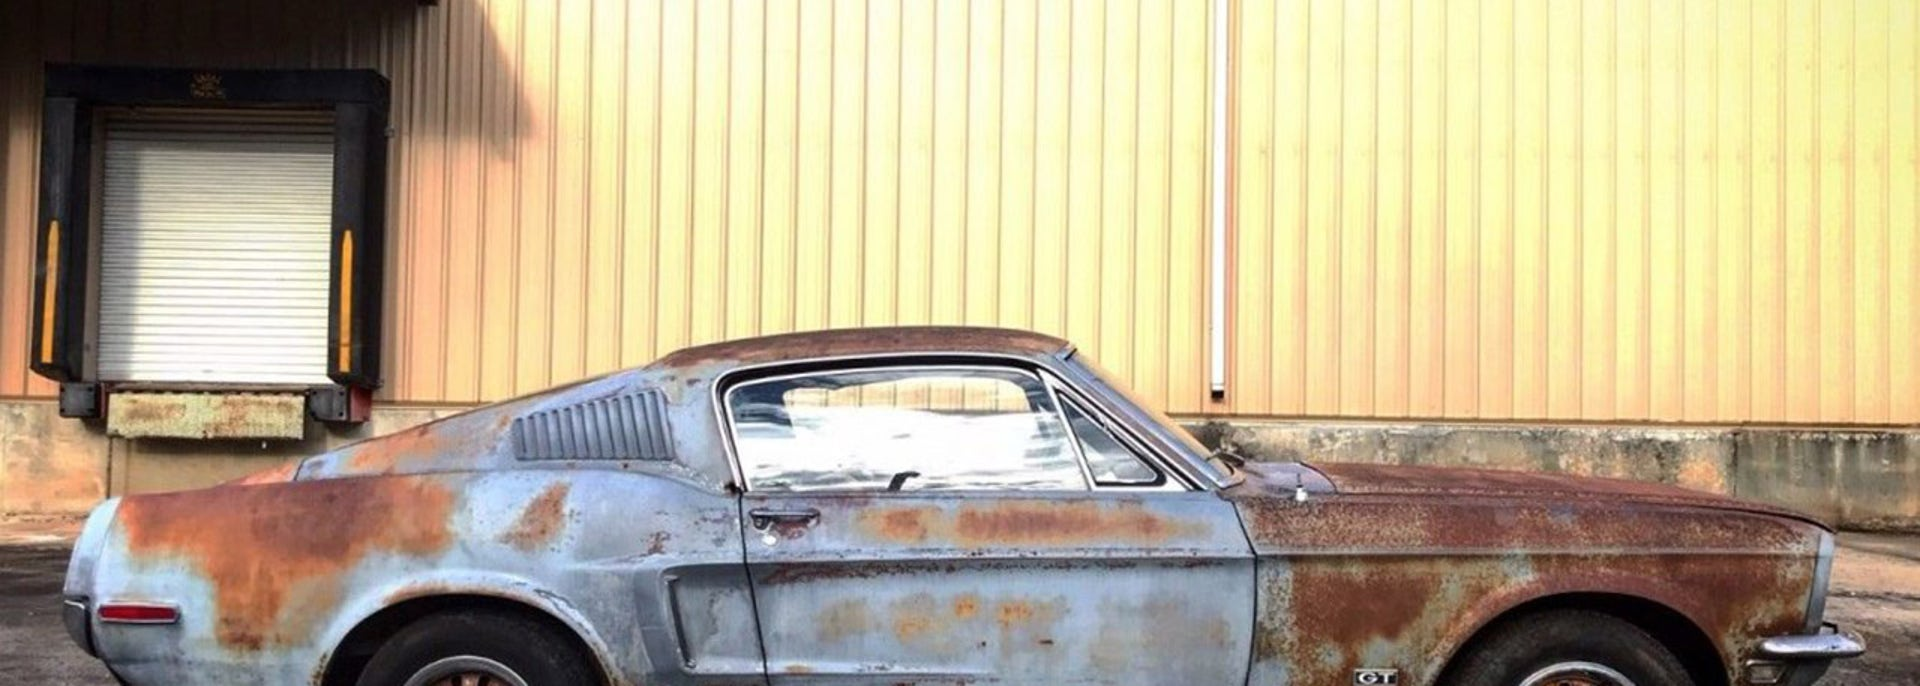 1968 Ford Mustang that was parked over 40 years sold with